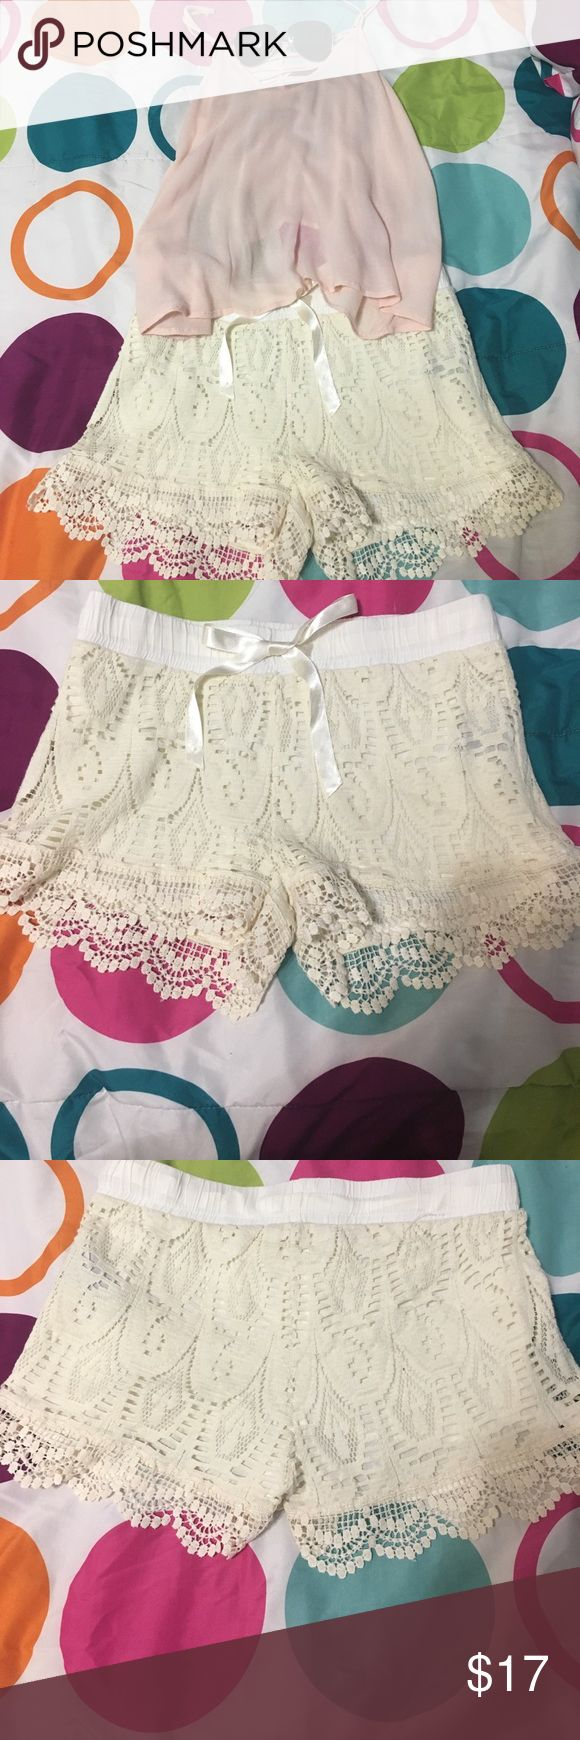 Cream Lace Shorts Rarely used lace shorts. These run small so they're really tight instead of a medium it's like a small. Price is negotiable and I'm willing to sell outside of Posh. I'm also selling the shirt in another listing if interested. T.J.Maxx Shorts